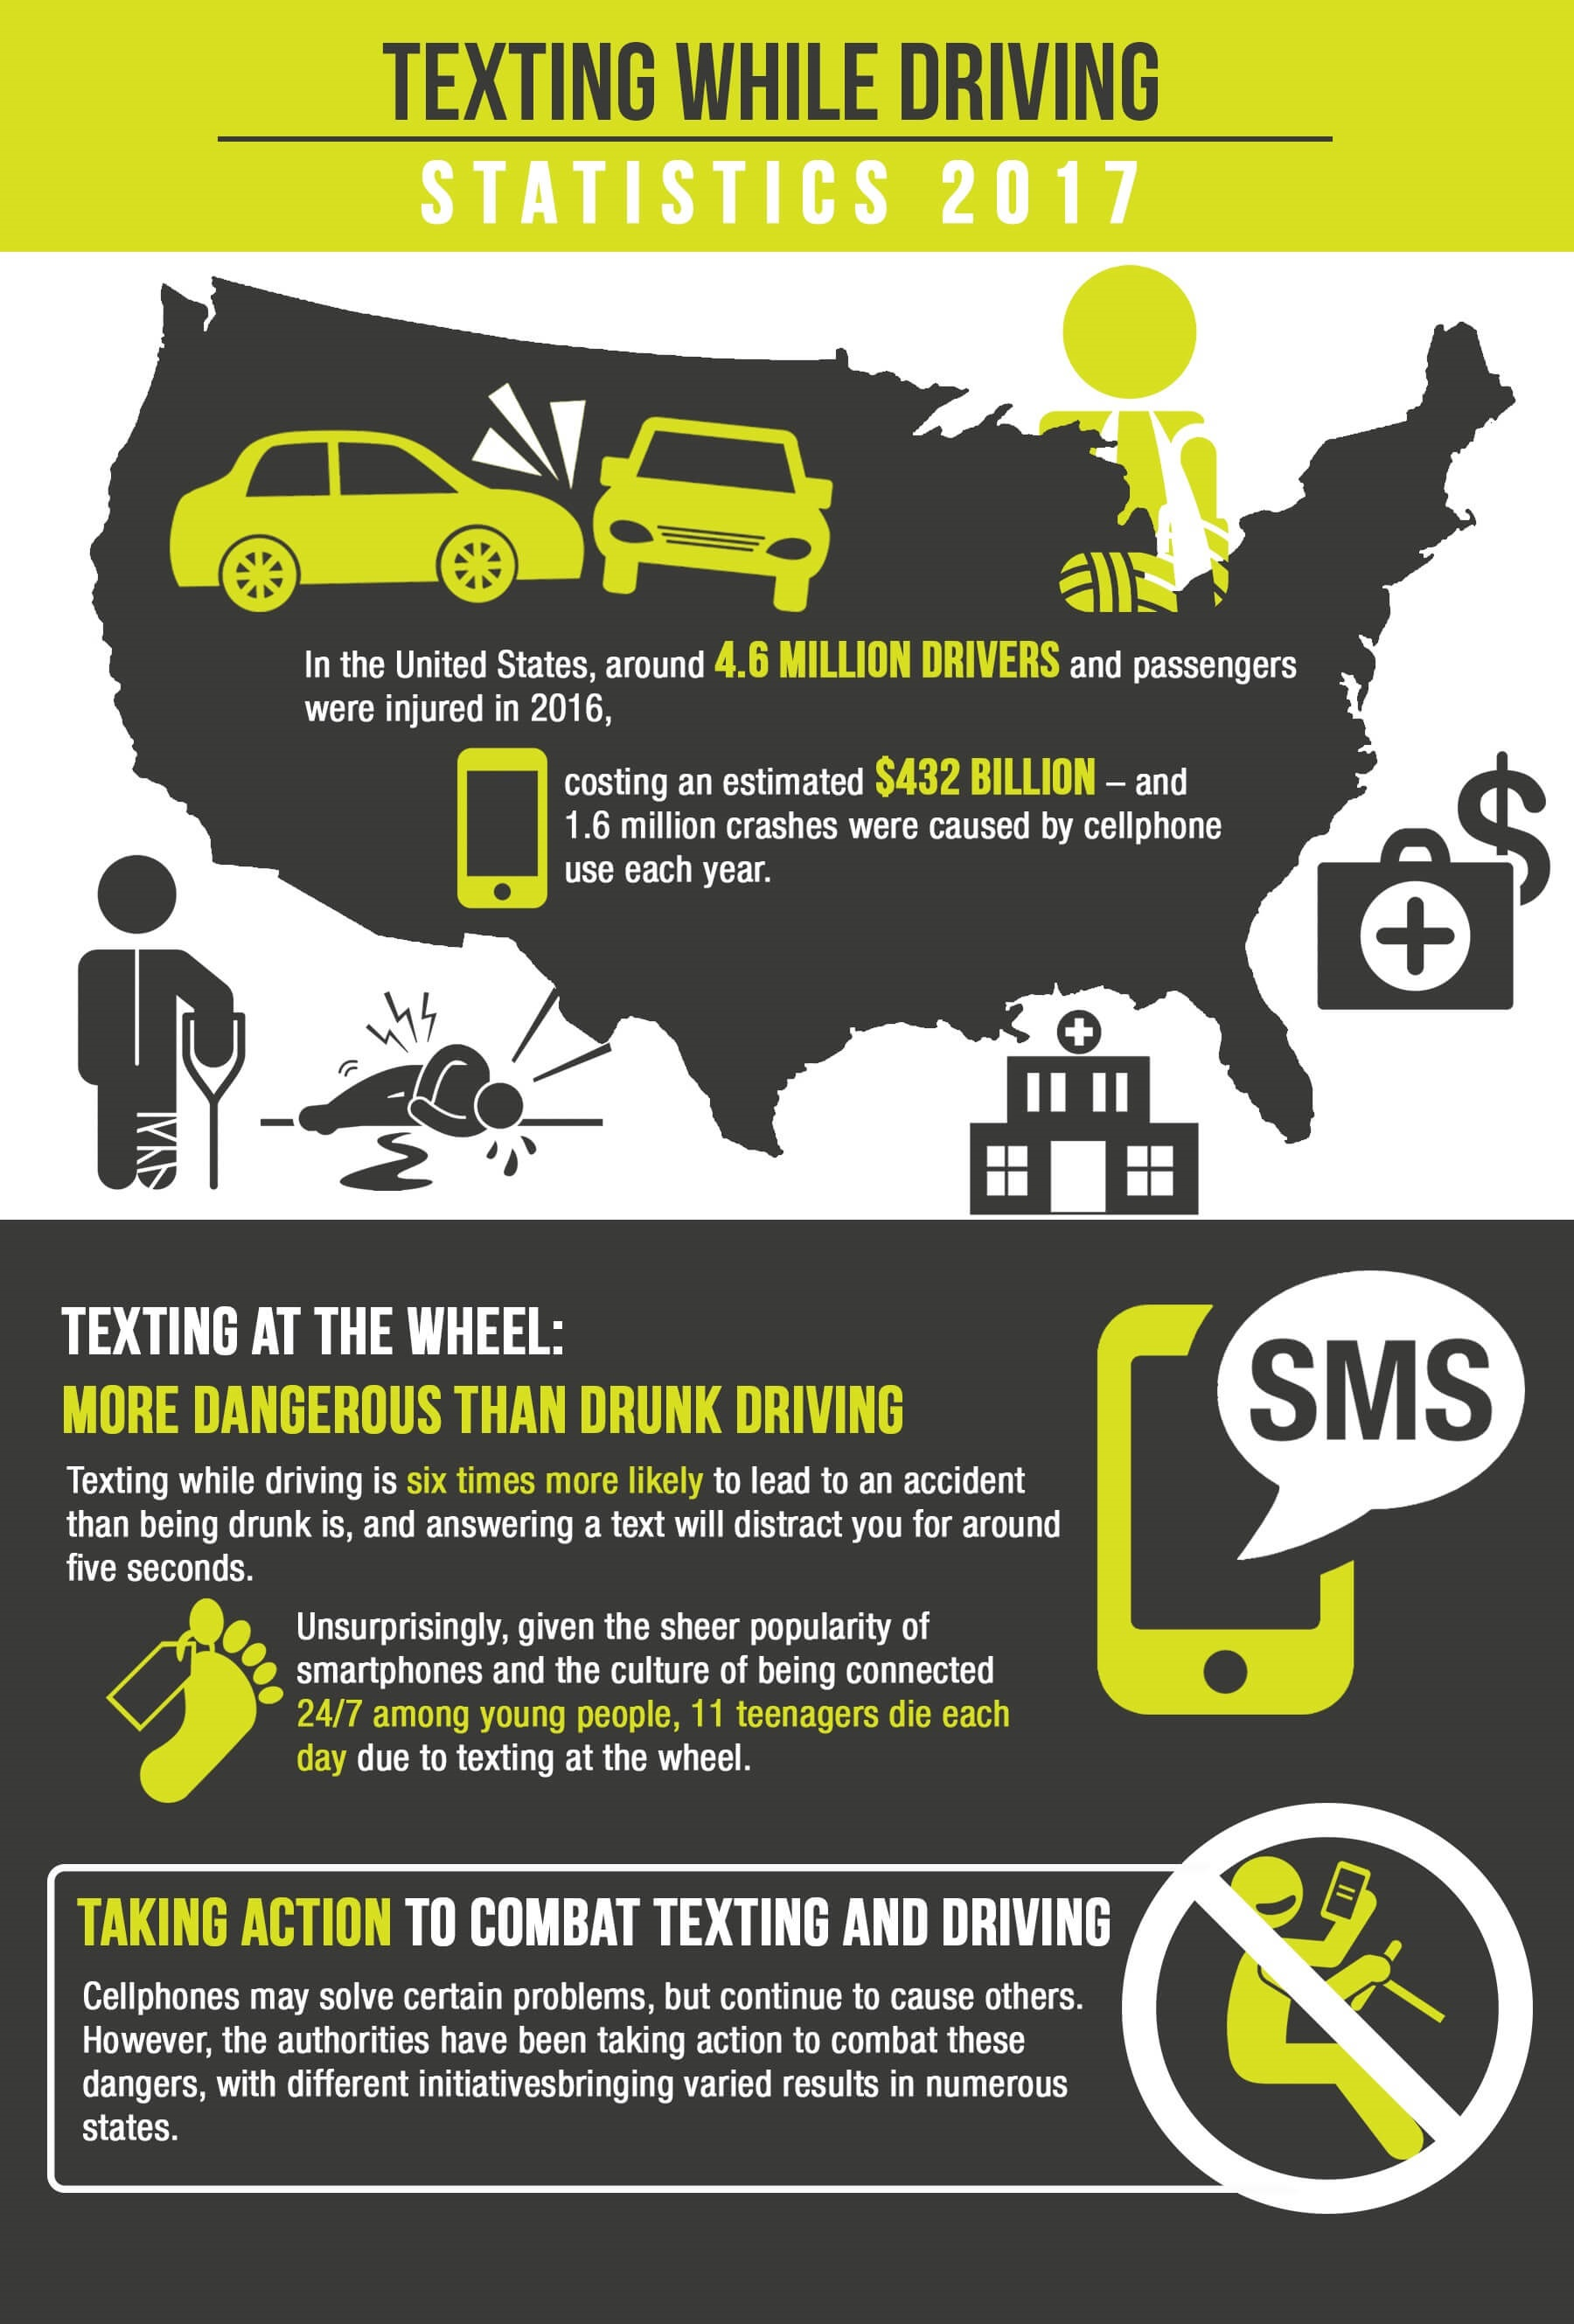 Don't Drive and Text!